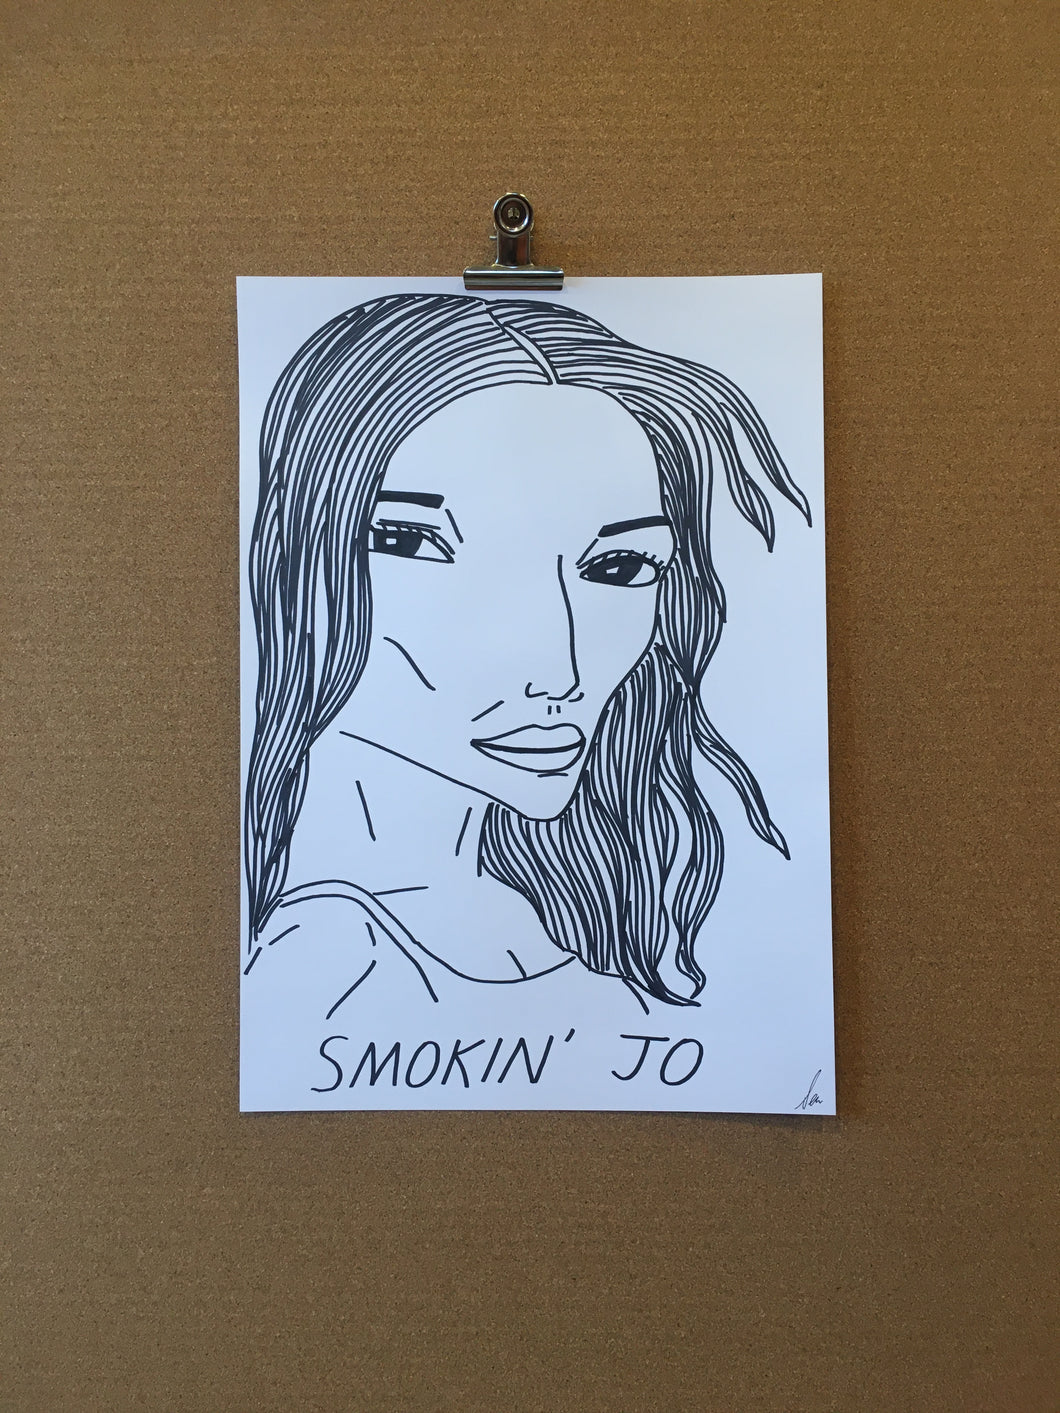 Badly Drawn Smokin' Jo - Original Drawing - A3.